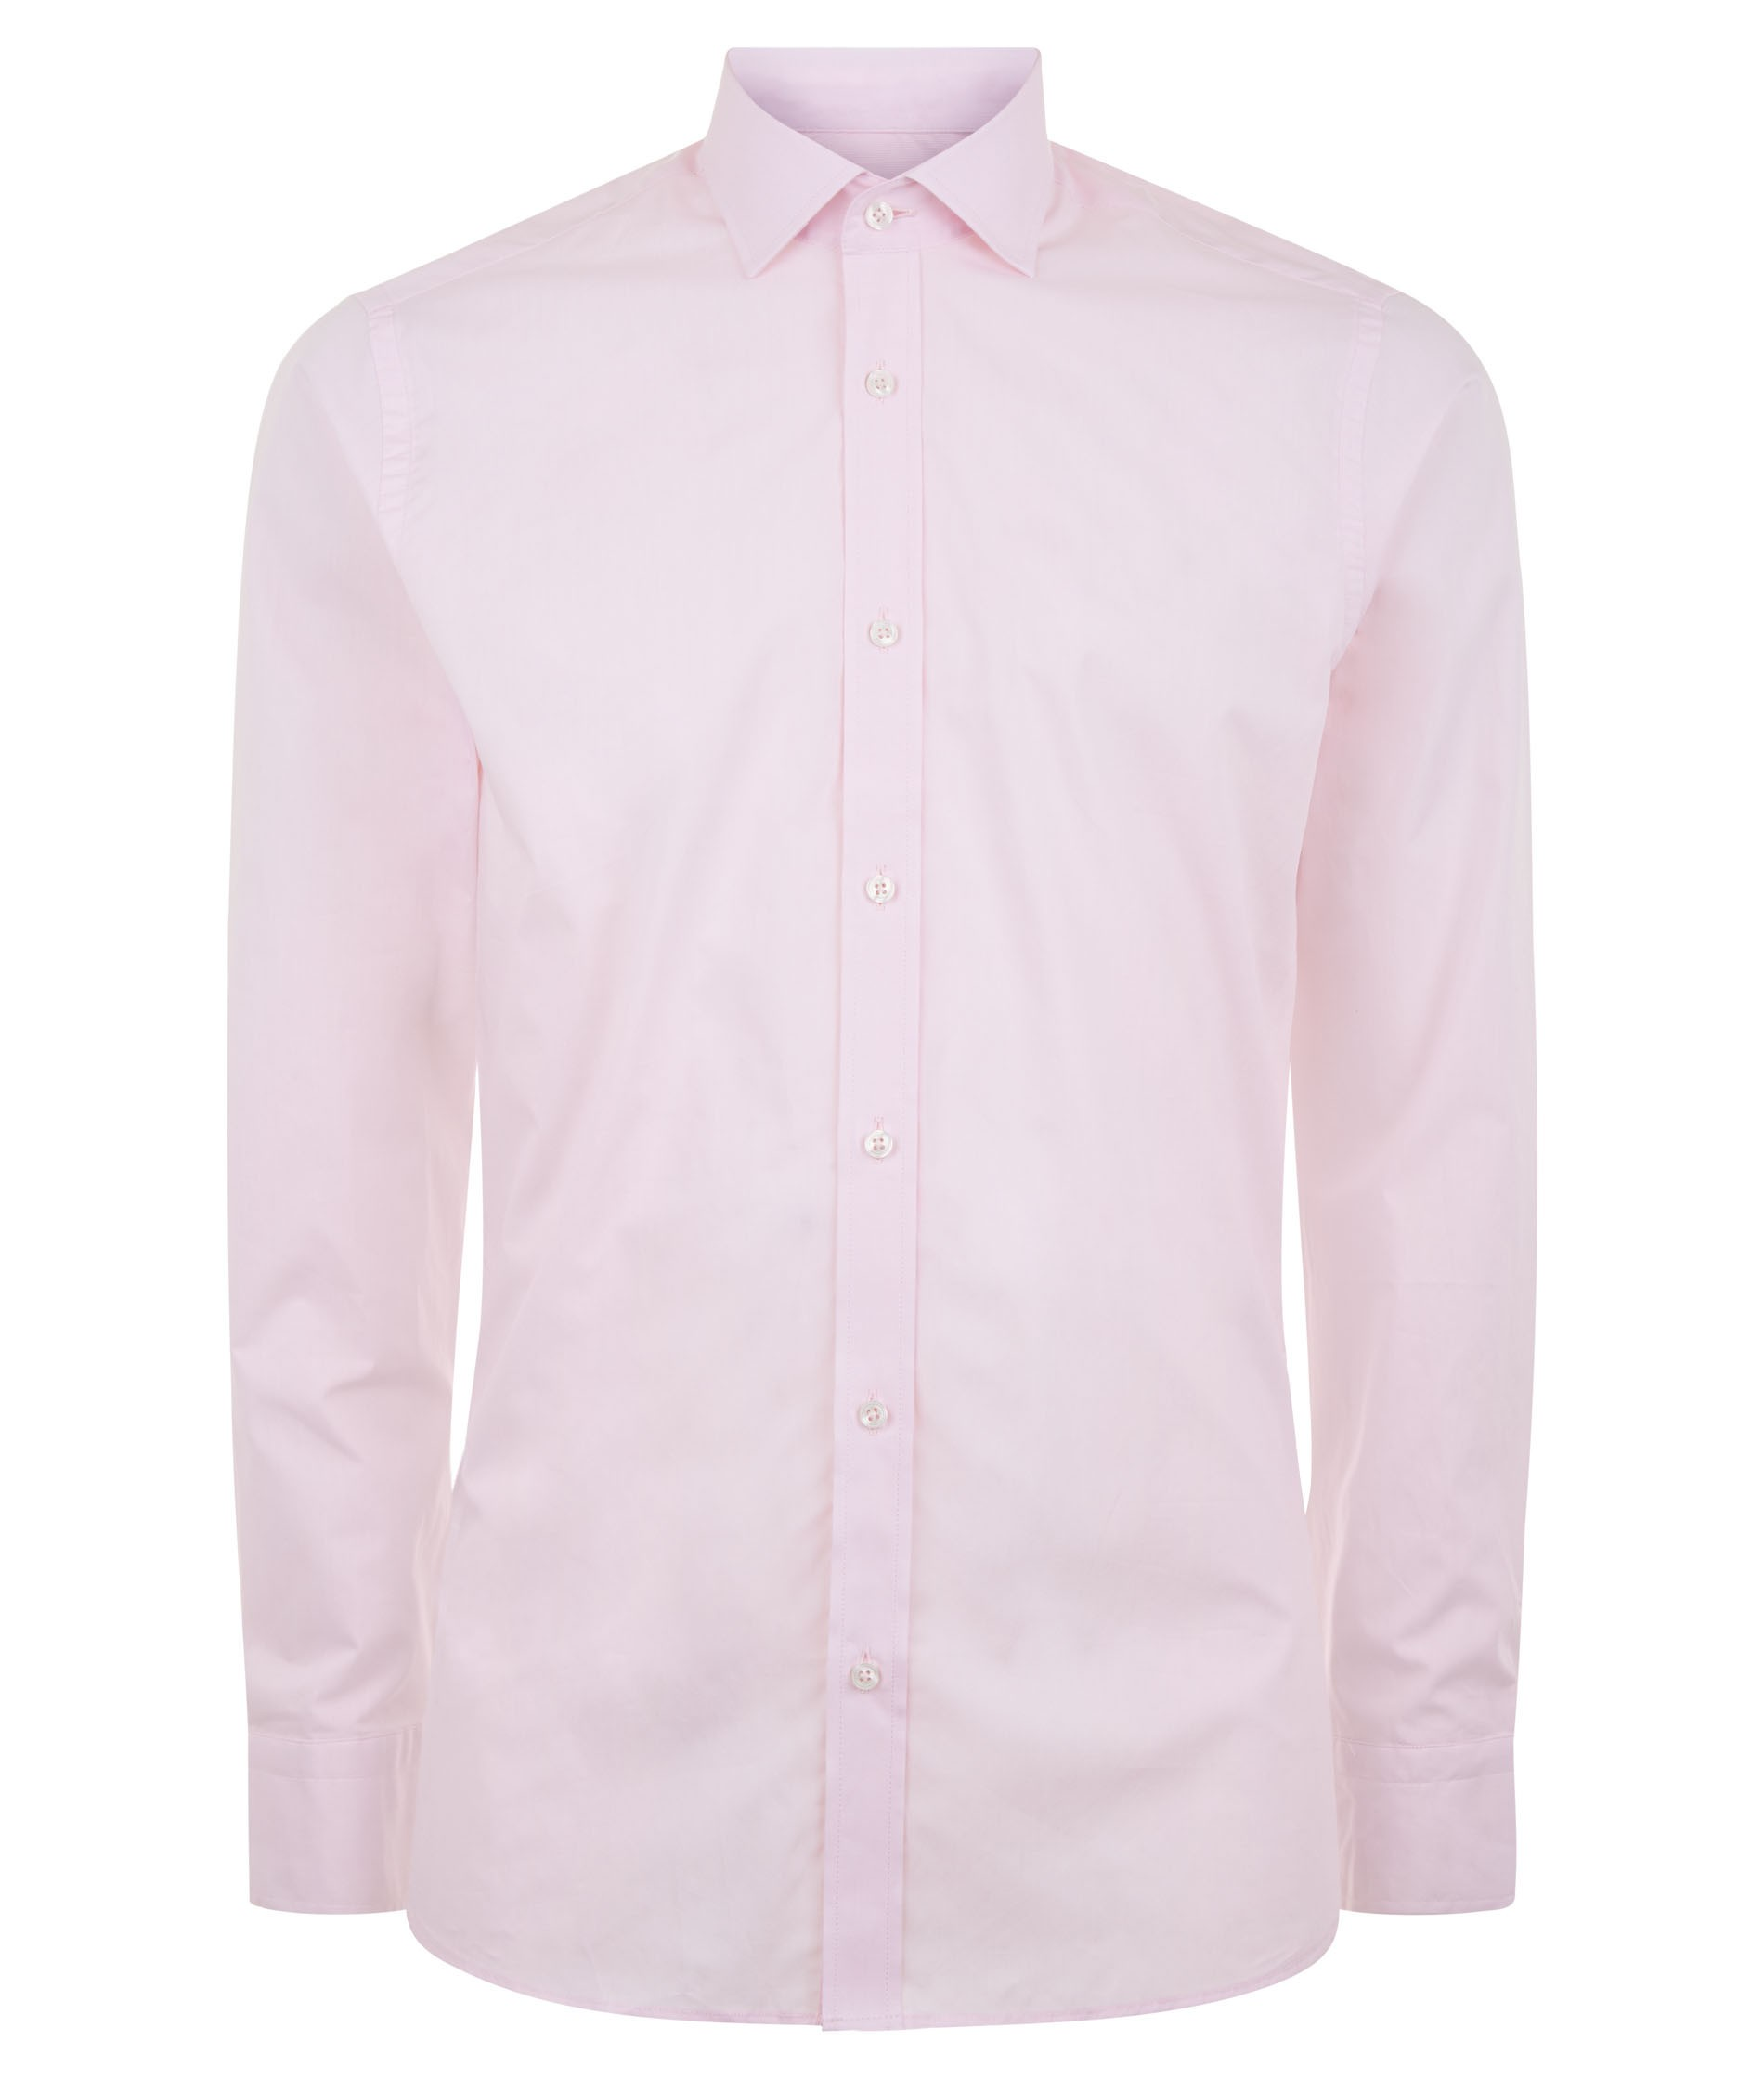 Nigel Hall Pink Regular Fit Classic Style Formal Shirt (Cell)